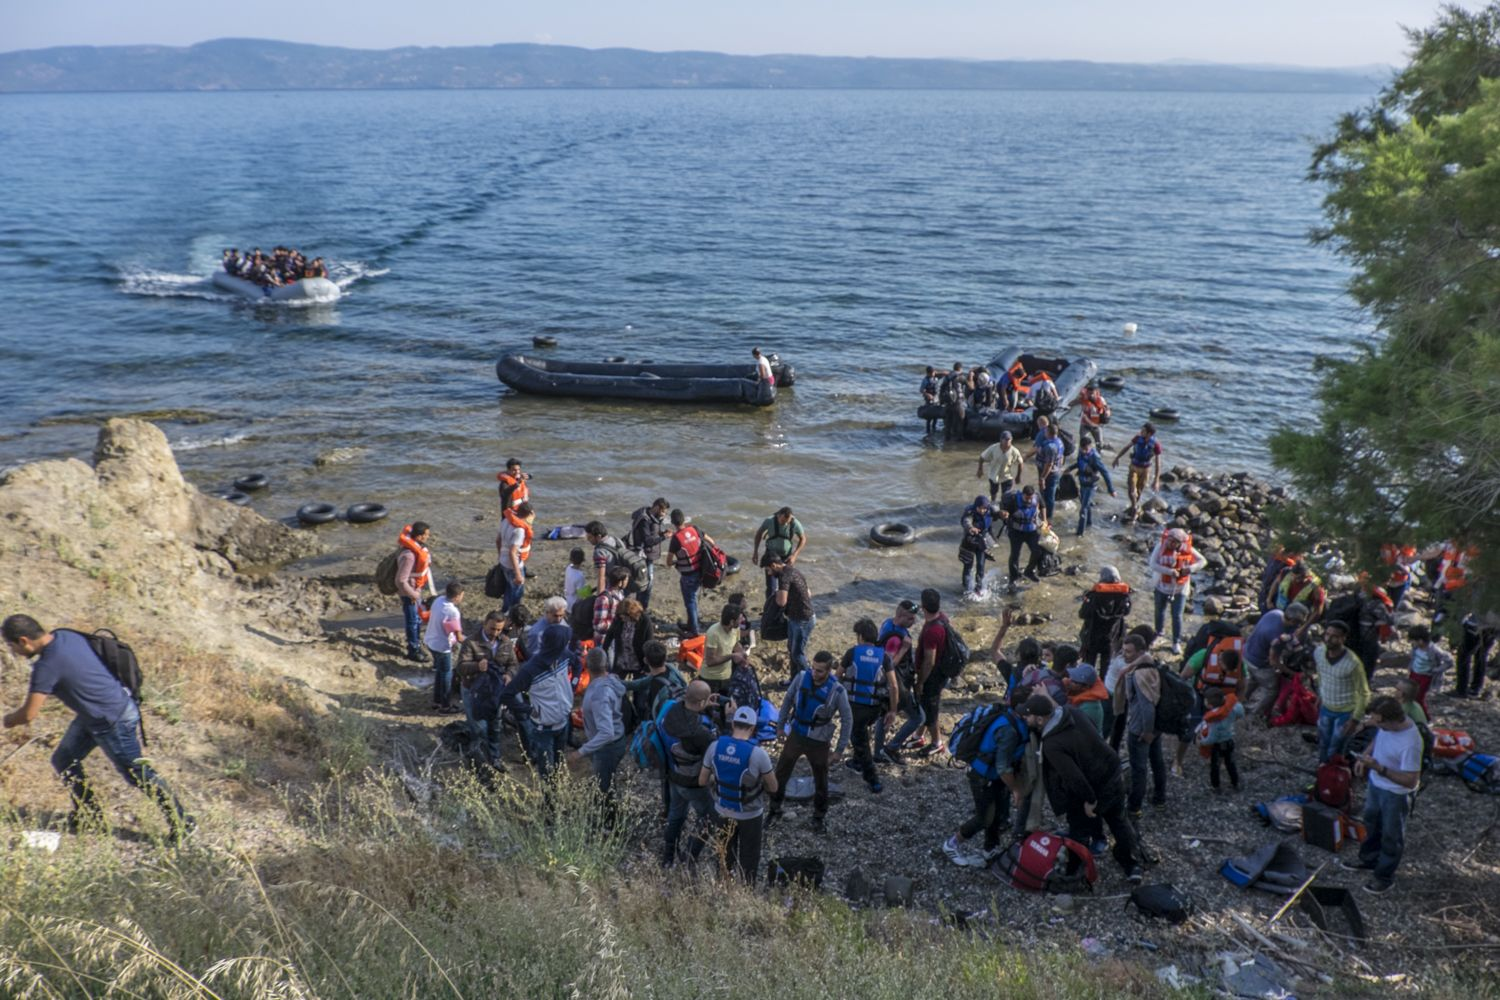 212281_Refugees_and_migrants_on_the_Greek_islands_of_Lesvos_2015